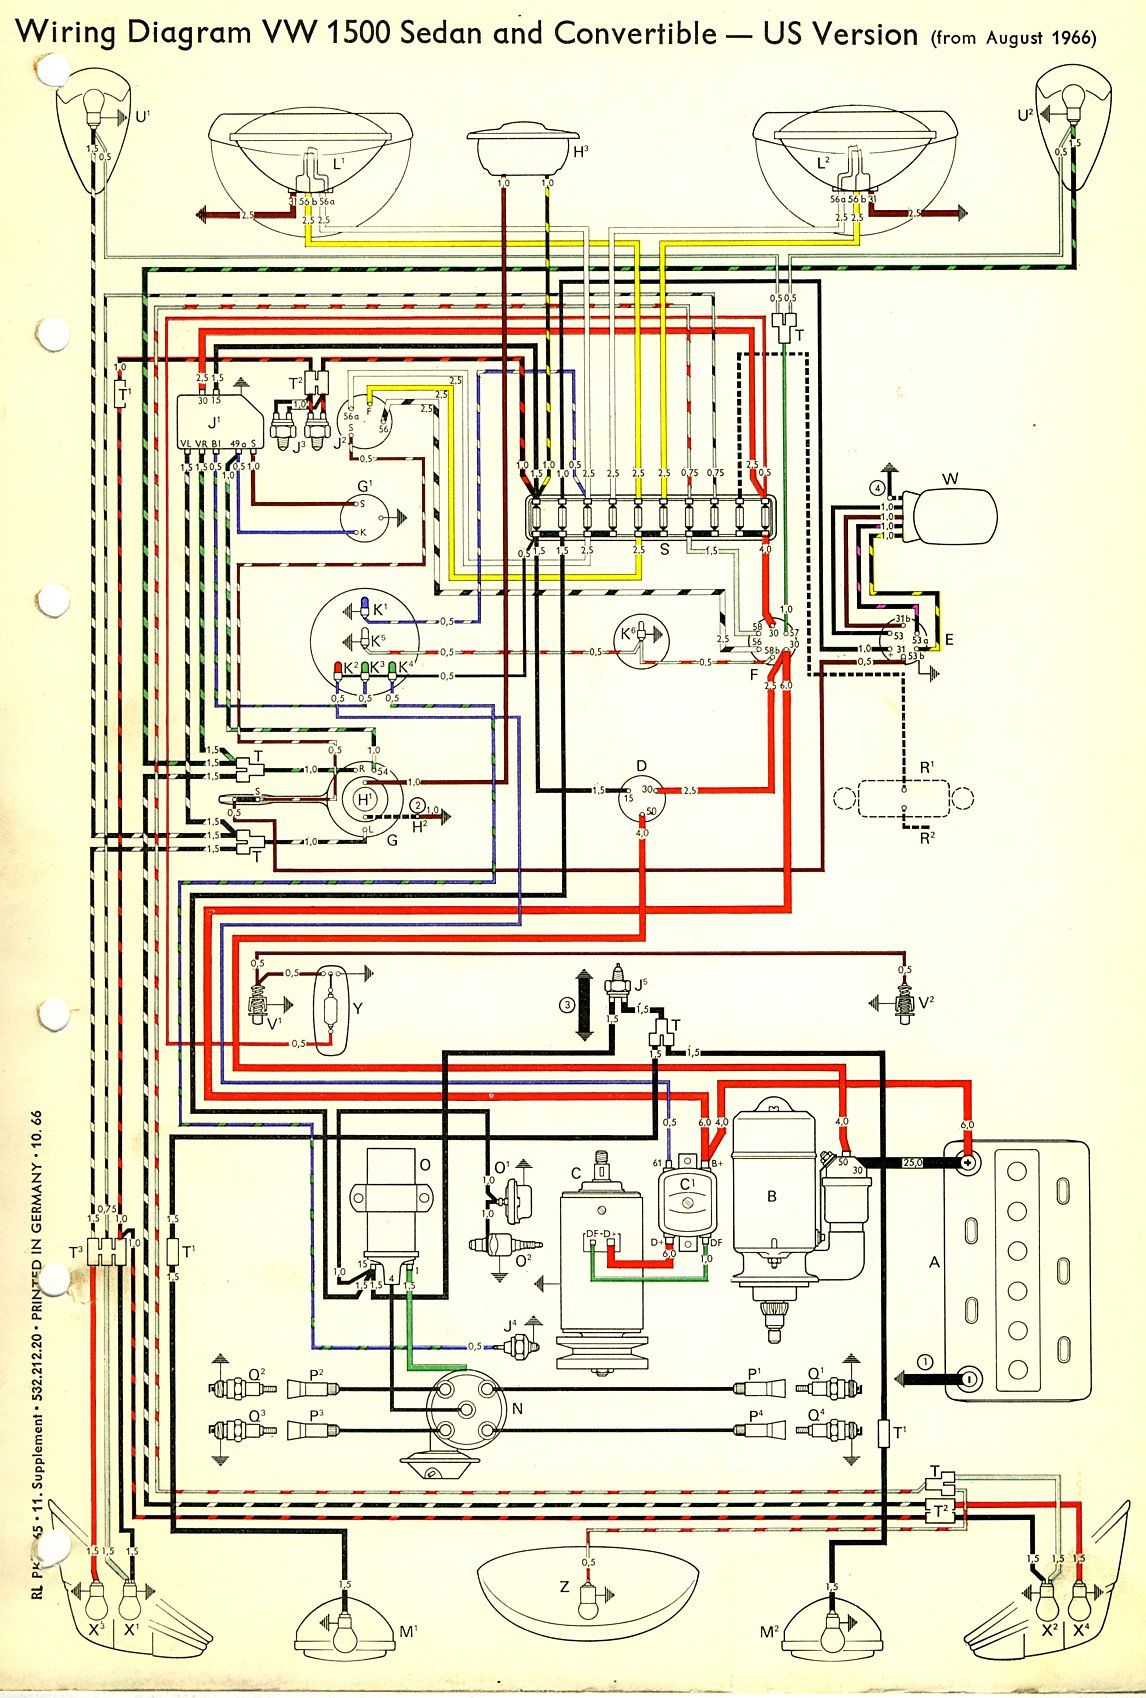 1adf990c0efb617c789fdd21338448b0 1967 beetle wiring diagram (usa) thegoldenbug com best 1967 vw vw wiring diagrams at webbmarketing.co